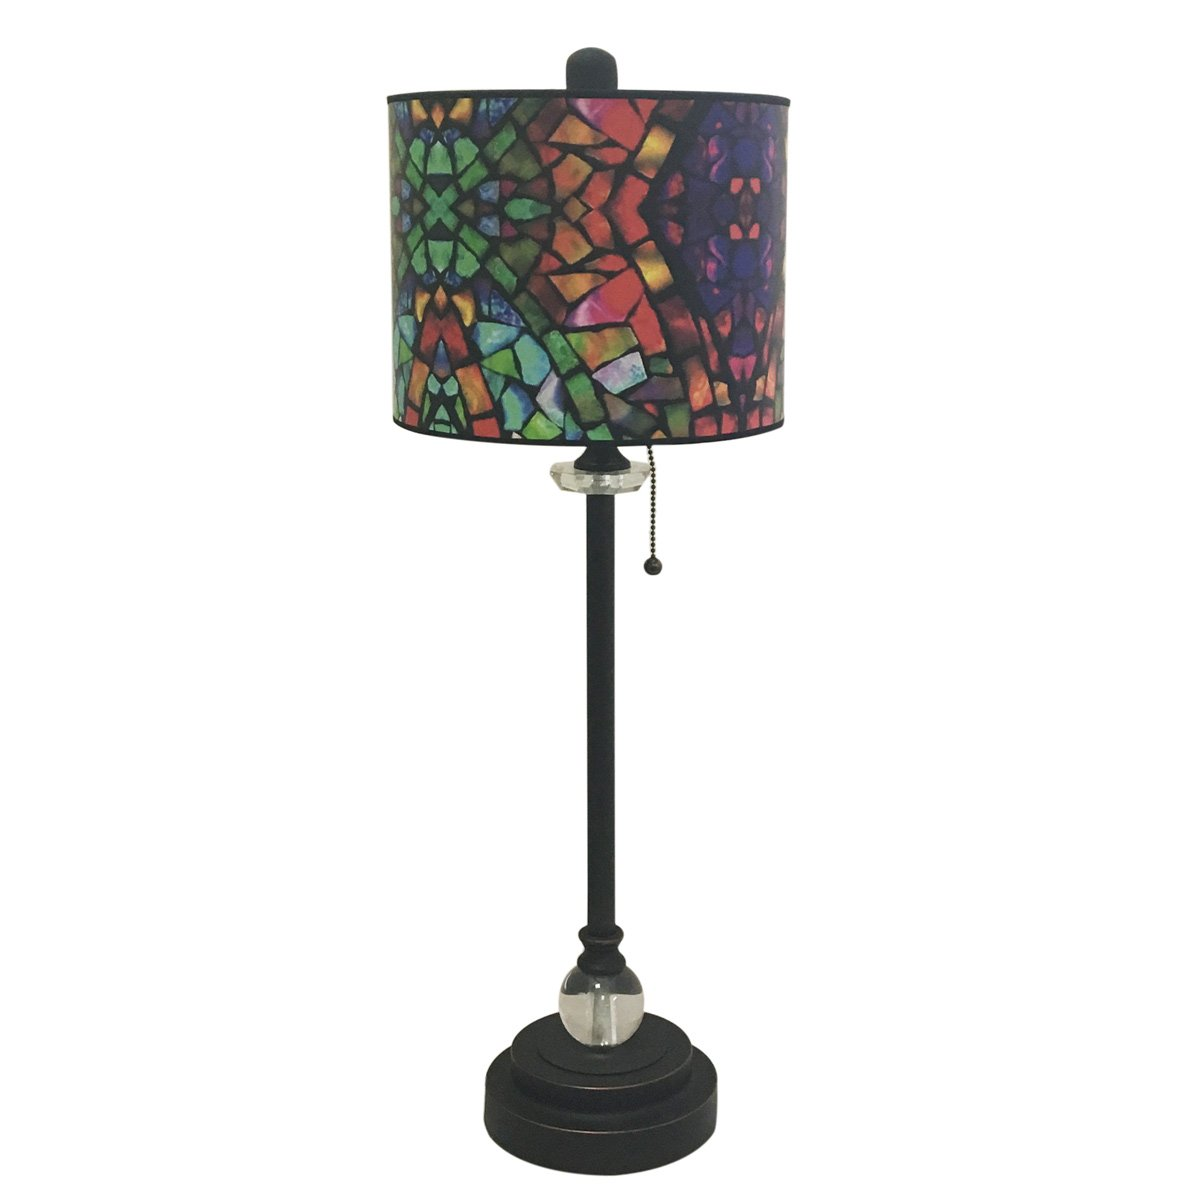 Royal Designs 28'' Crystal and Oil Rub Bronze Buffet Lamp with Mosaic Stained Glass Design Hardback Lamp Shade